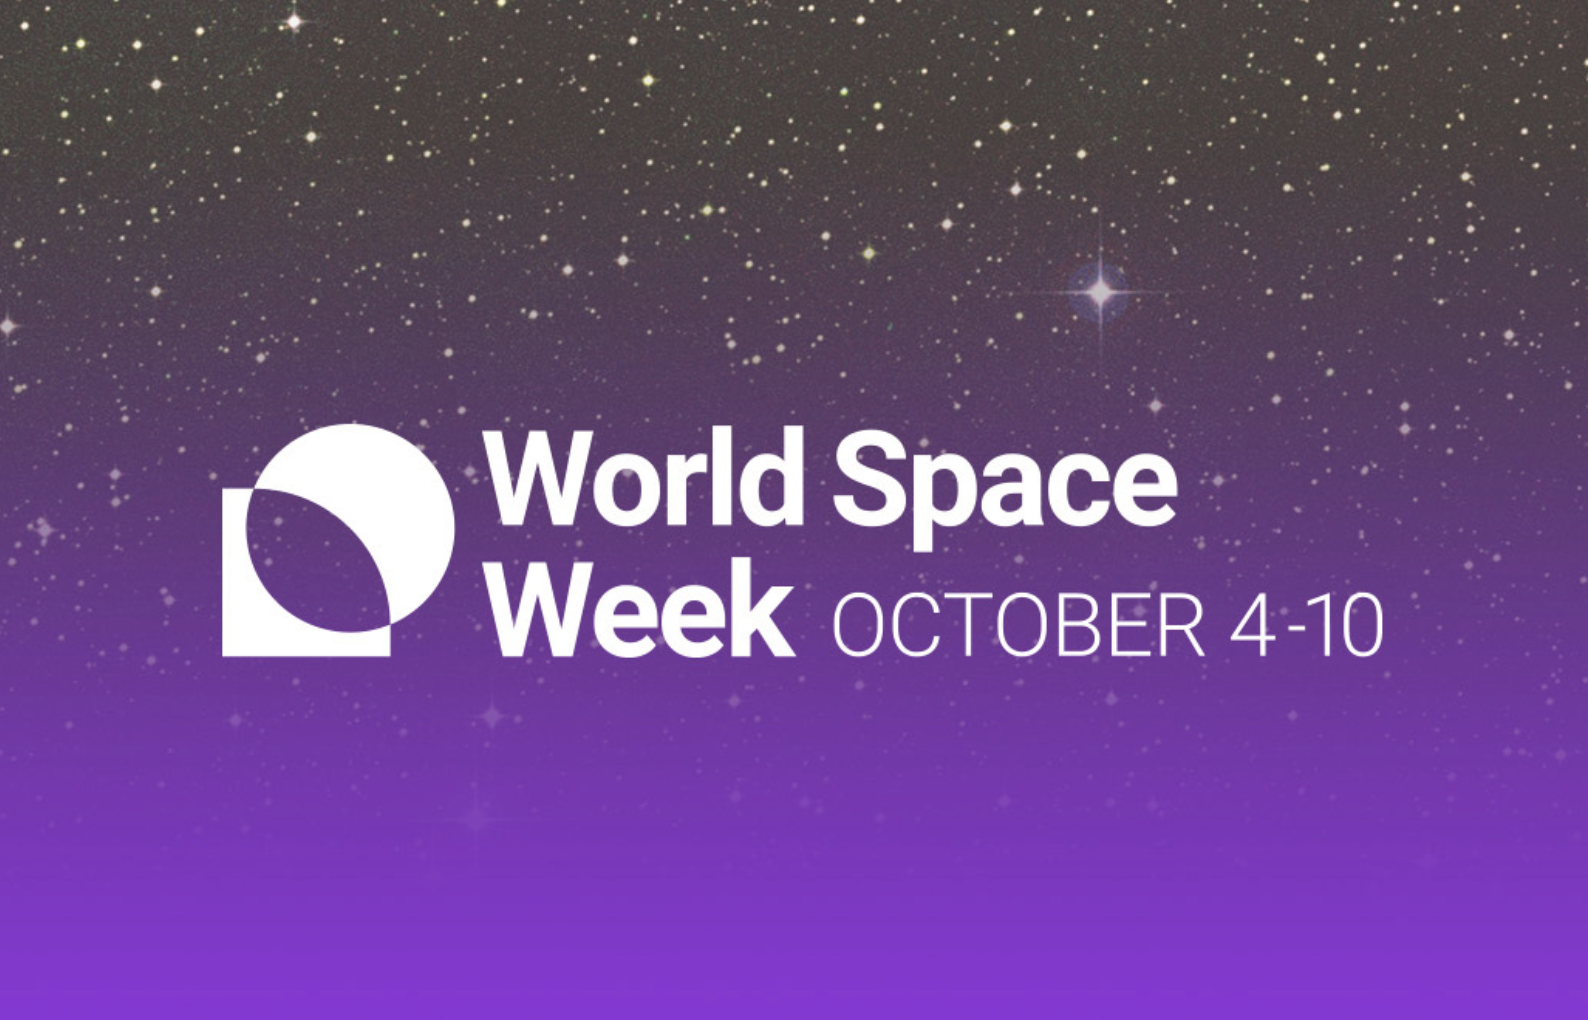 World Space Week Event